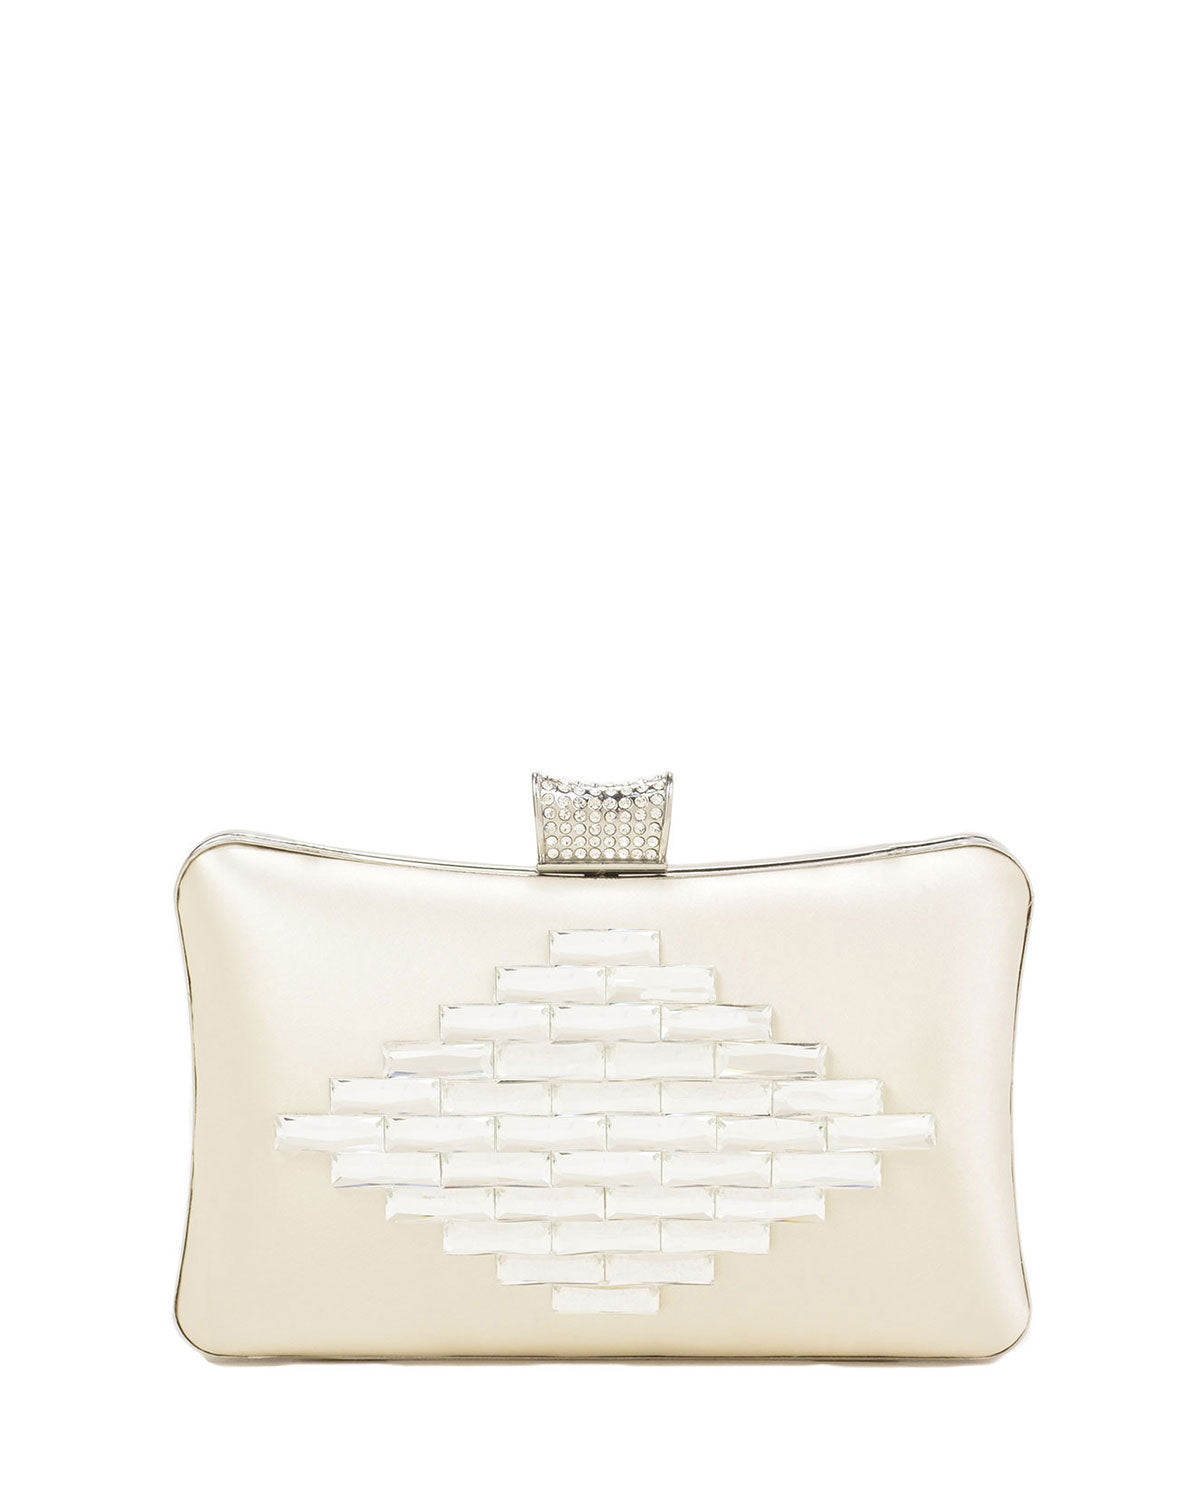 Badgley Mischka Australia - Badgley Mischka Bridal Bags - Aero